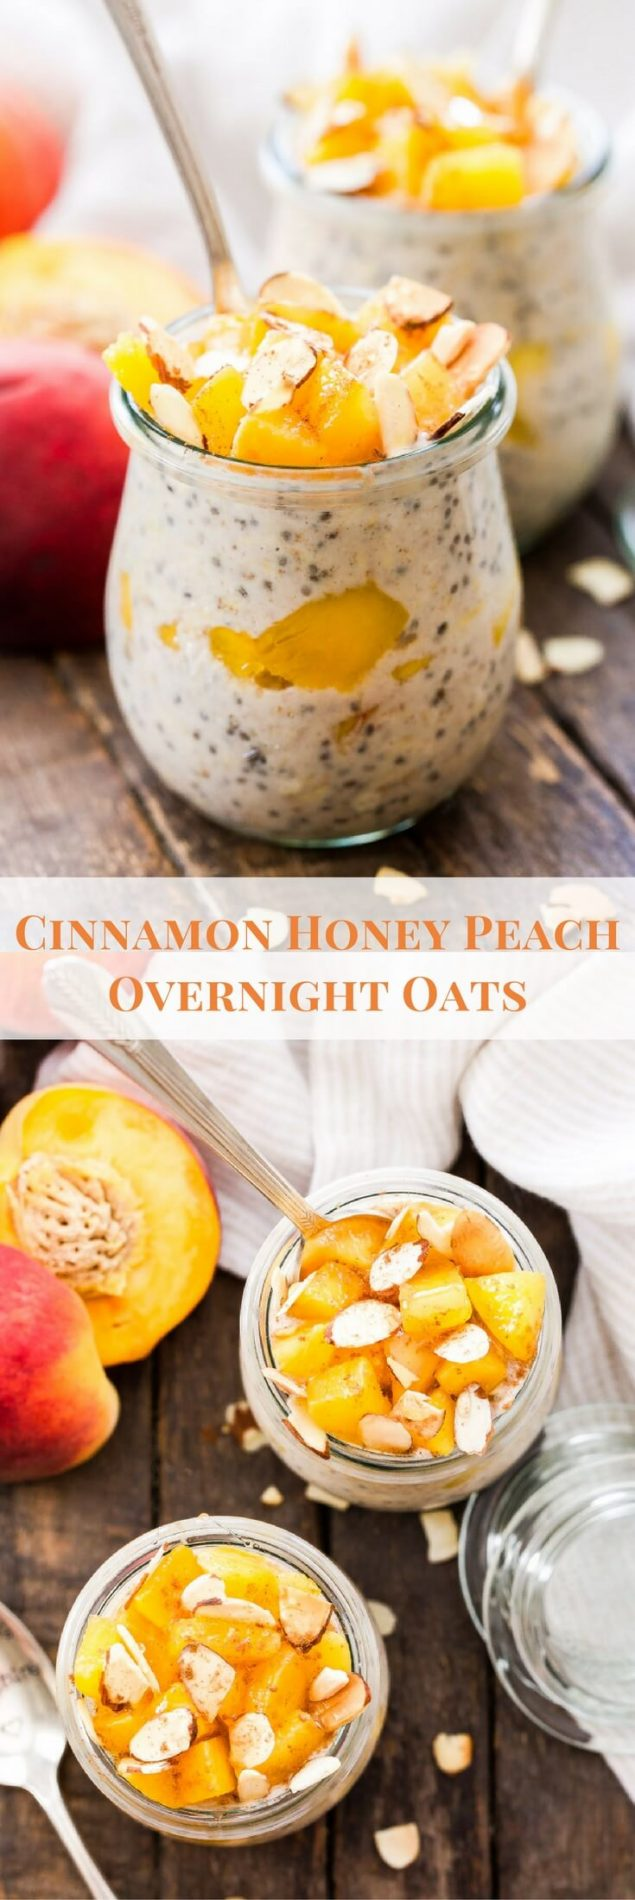 Fresh summer peaches, warm cinnamon and sweet honey are the perfect combination of flavors in these Cinnamon Honey Peach Overnight Oats!